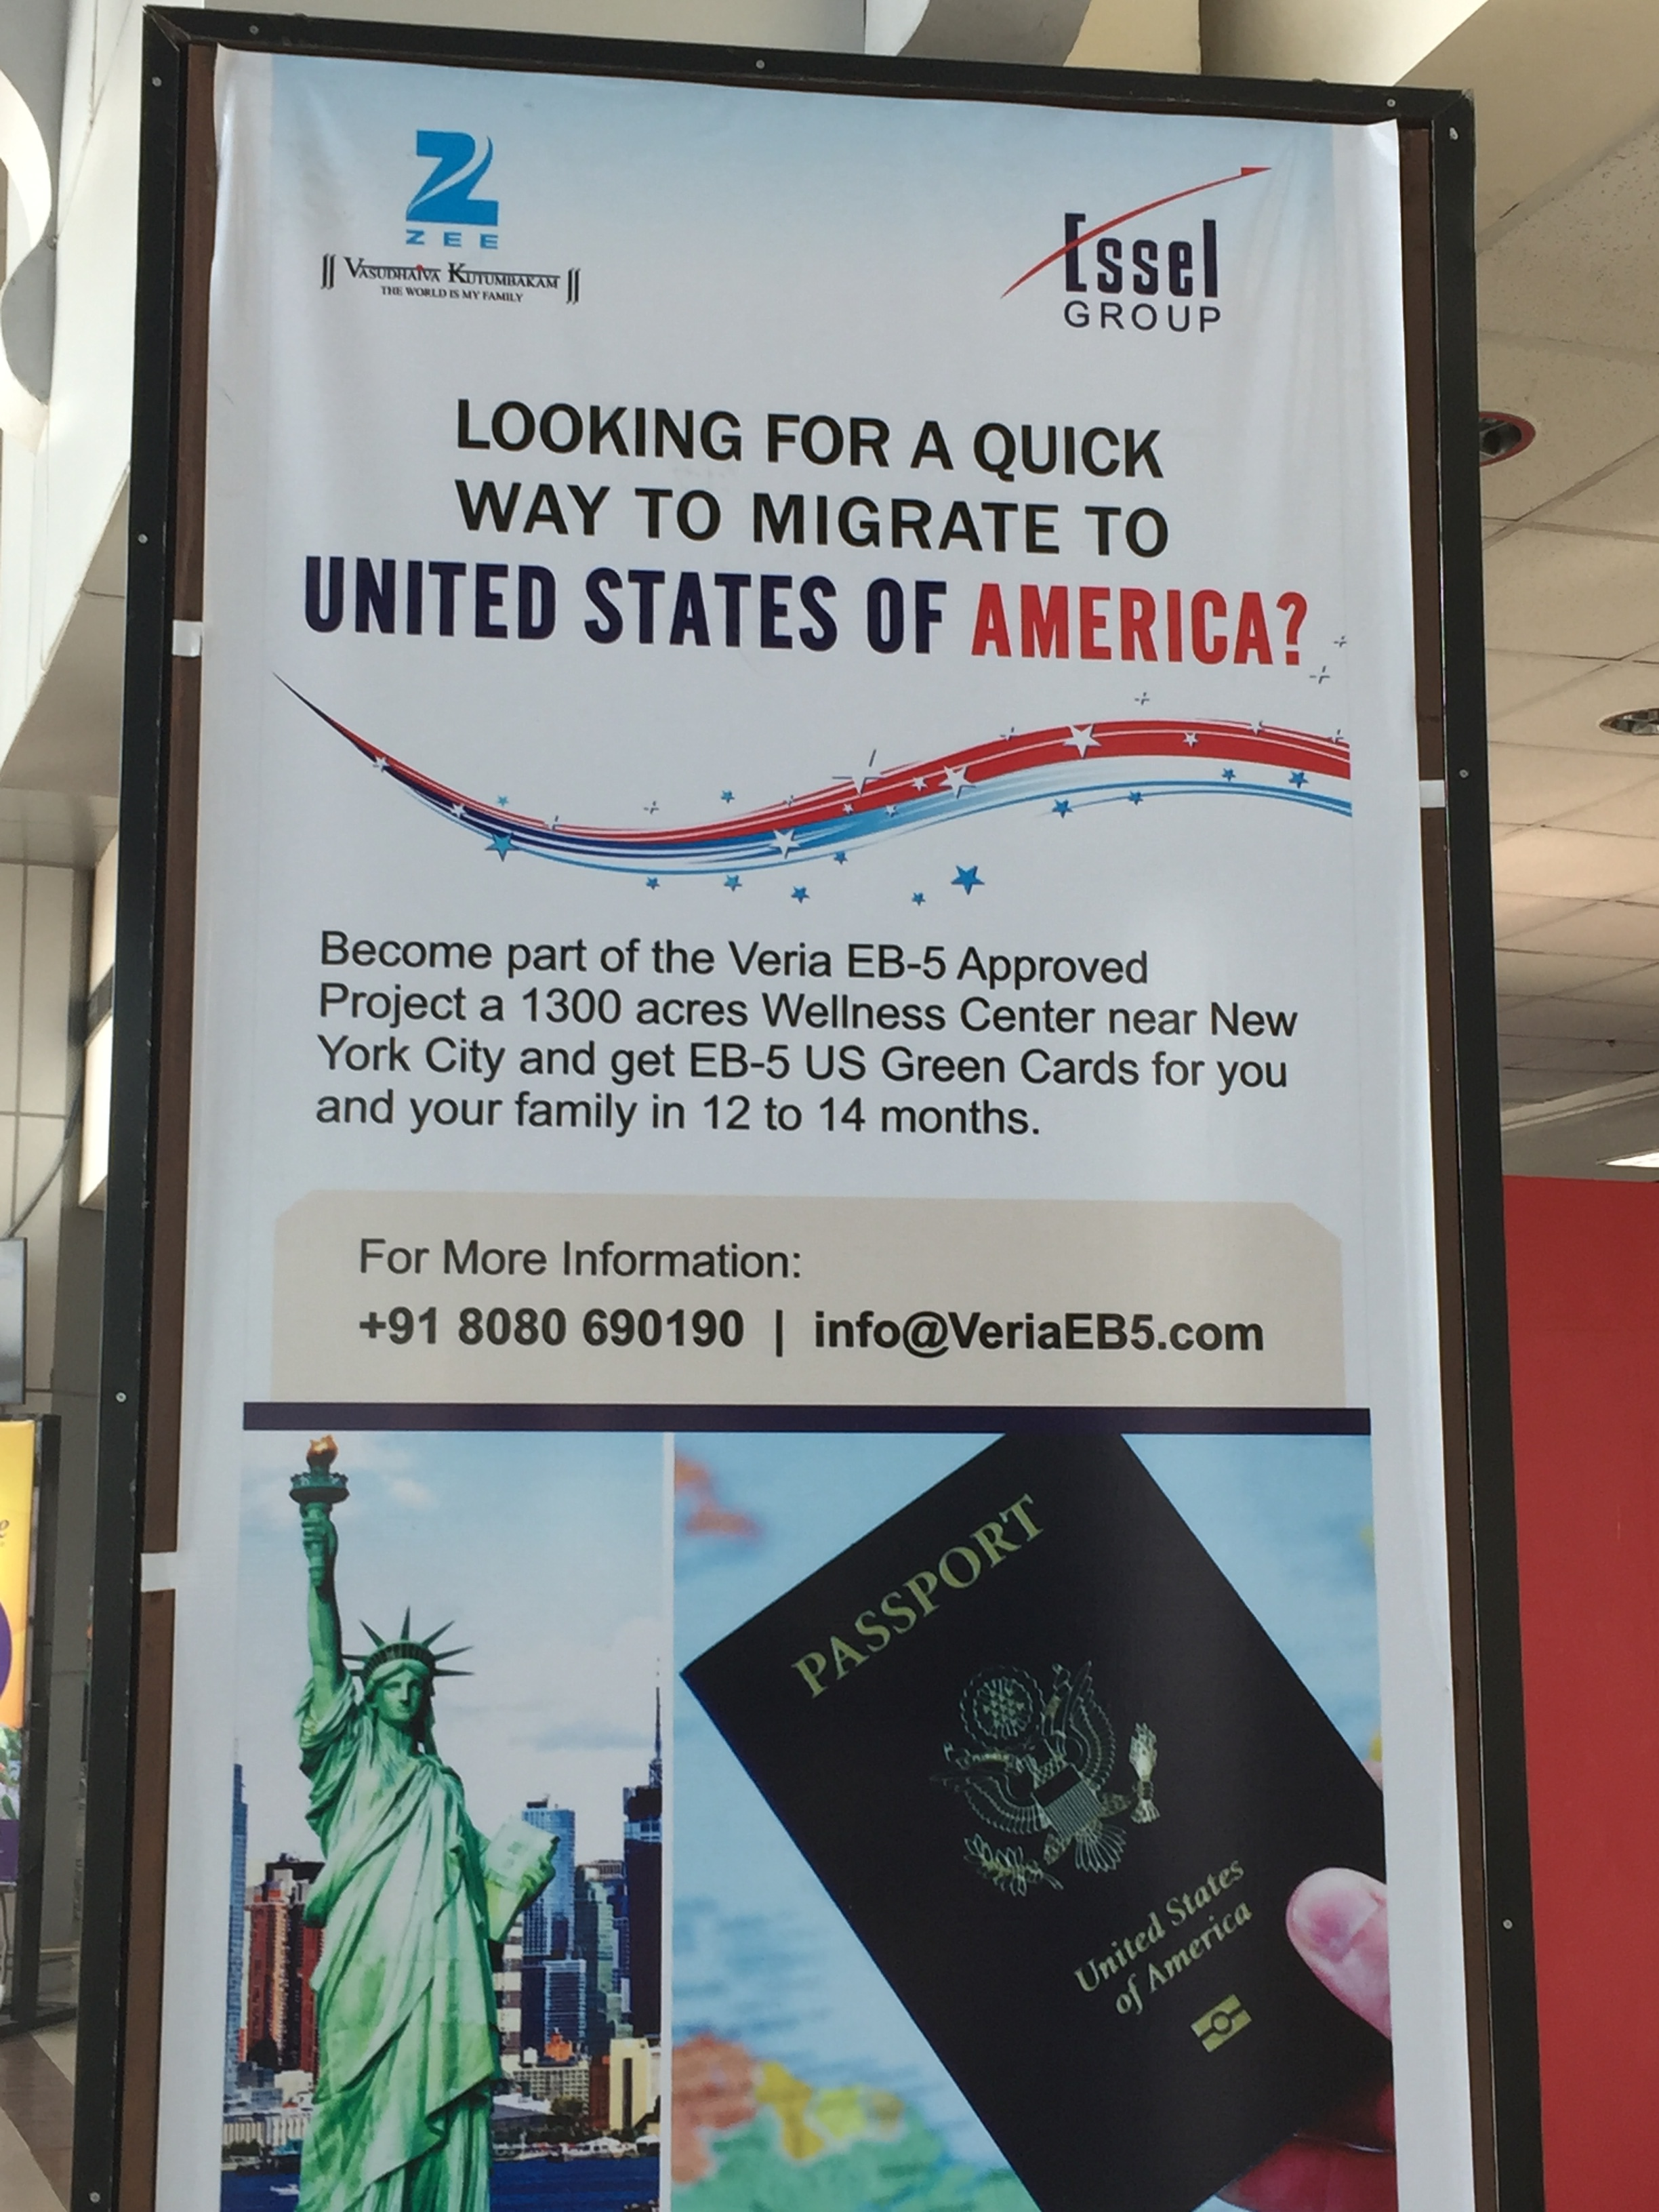 The American Dream is still alive and well across the world.